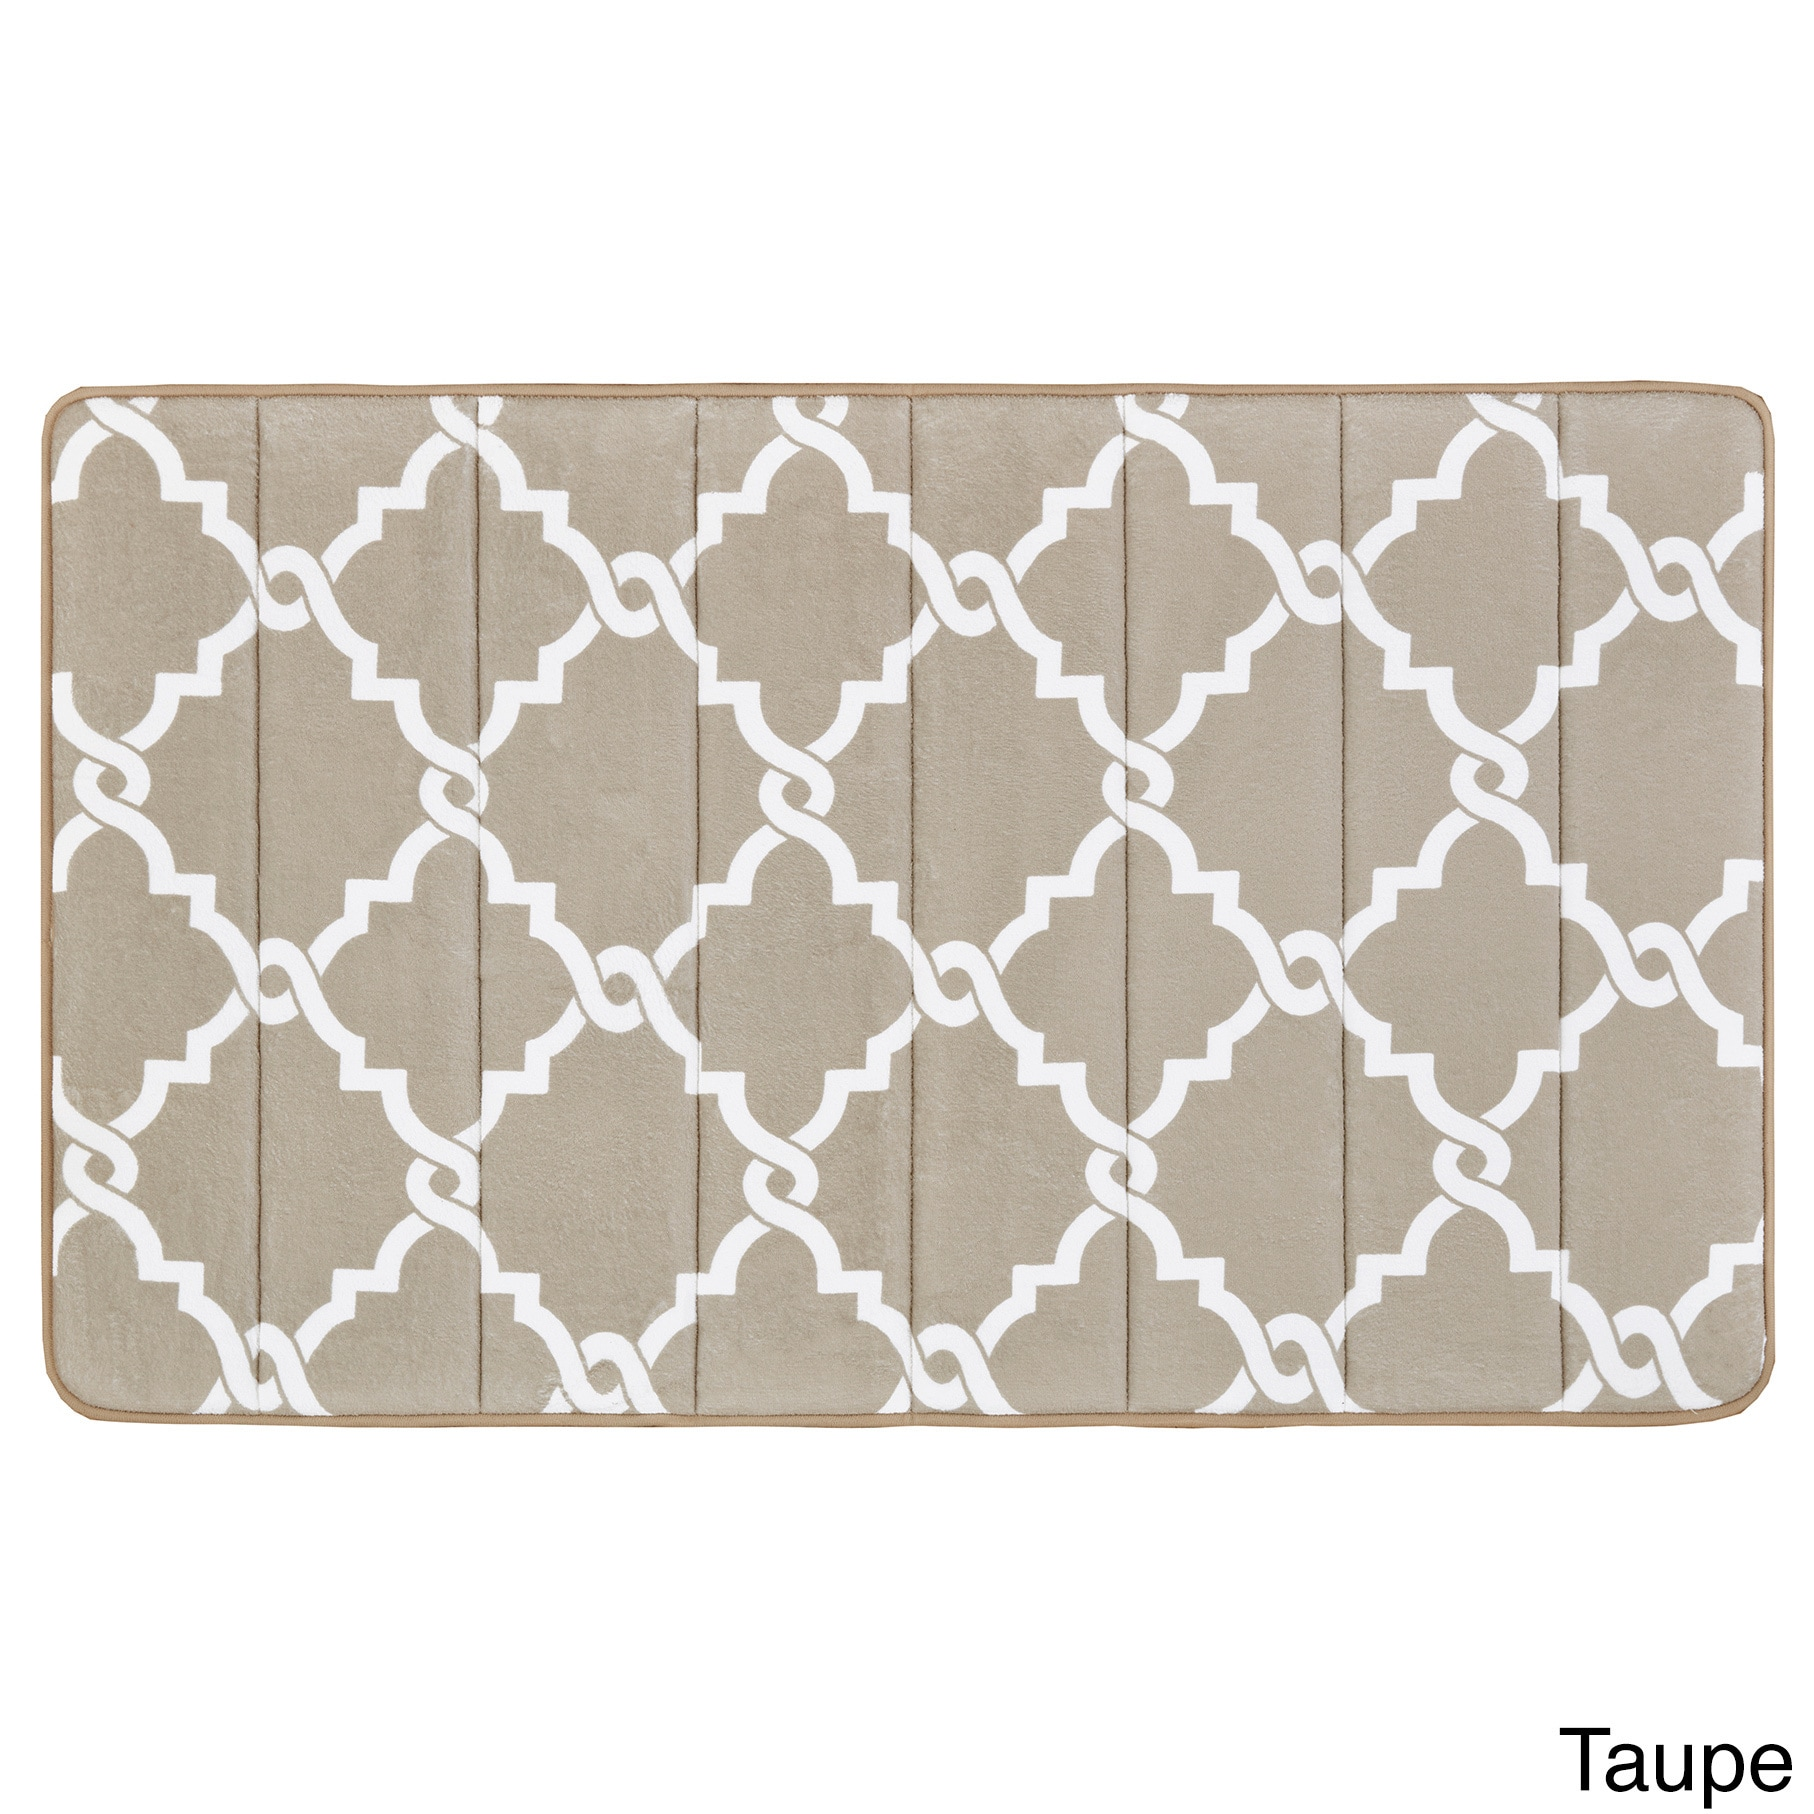 expand macys bathroom collection rug sanctuary foam size reviews full novaform purple of inspire to memory bath mat sage costco set target in click